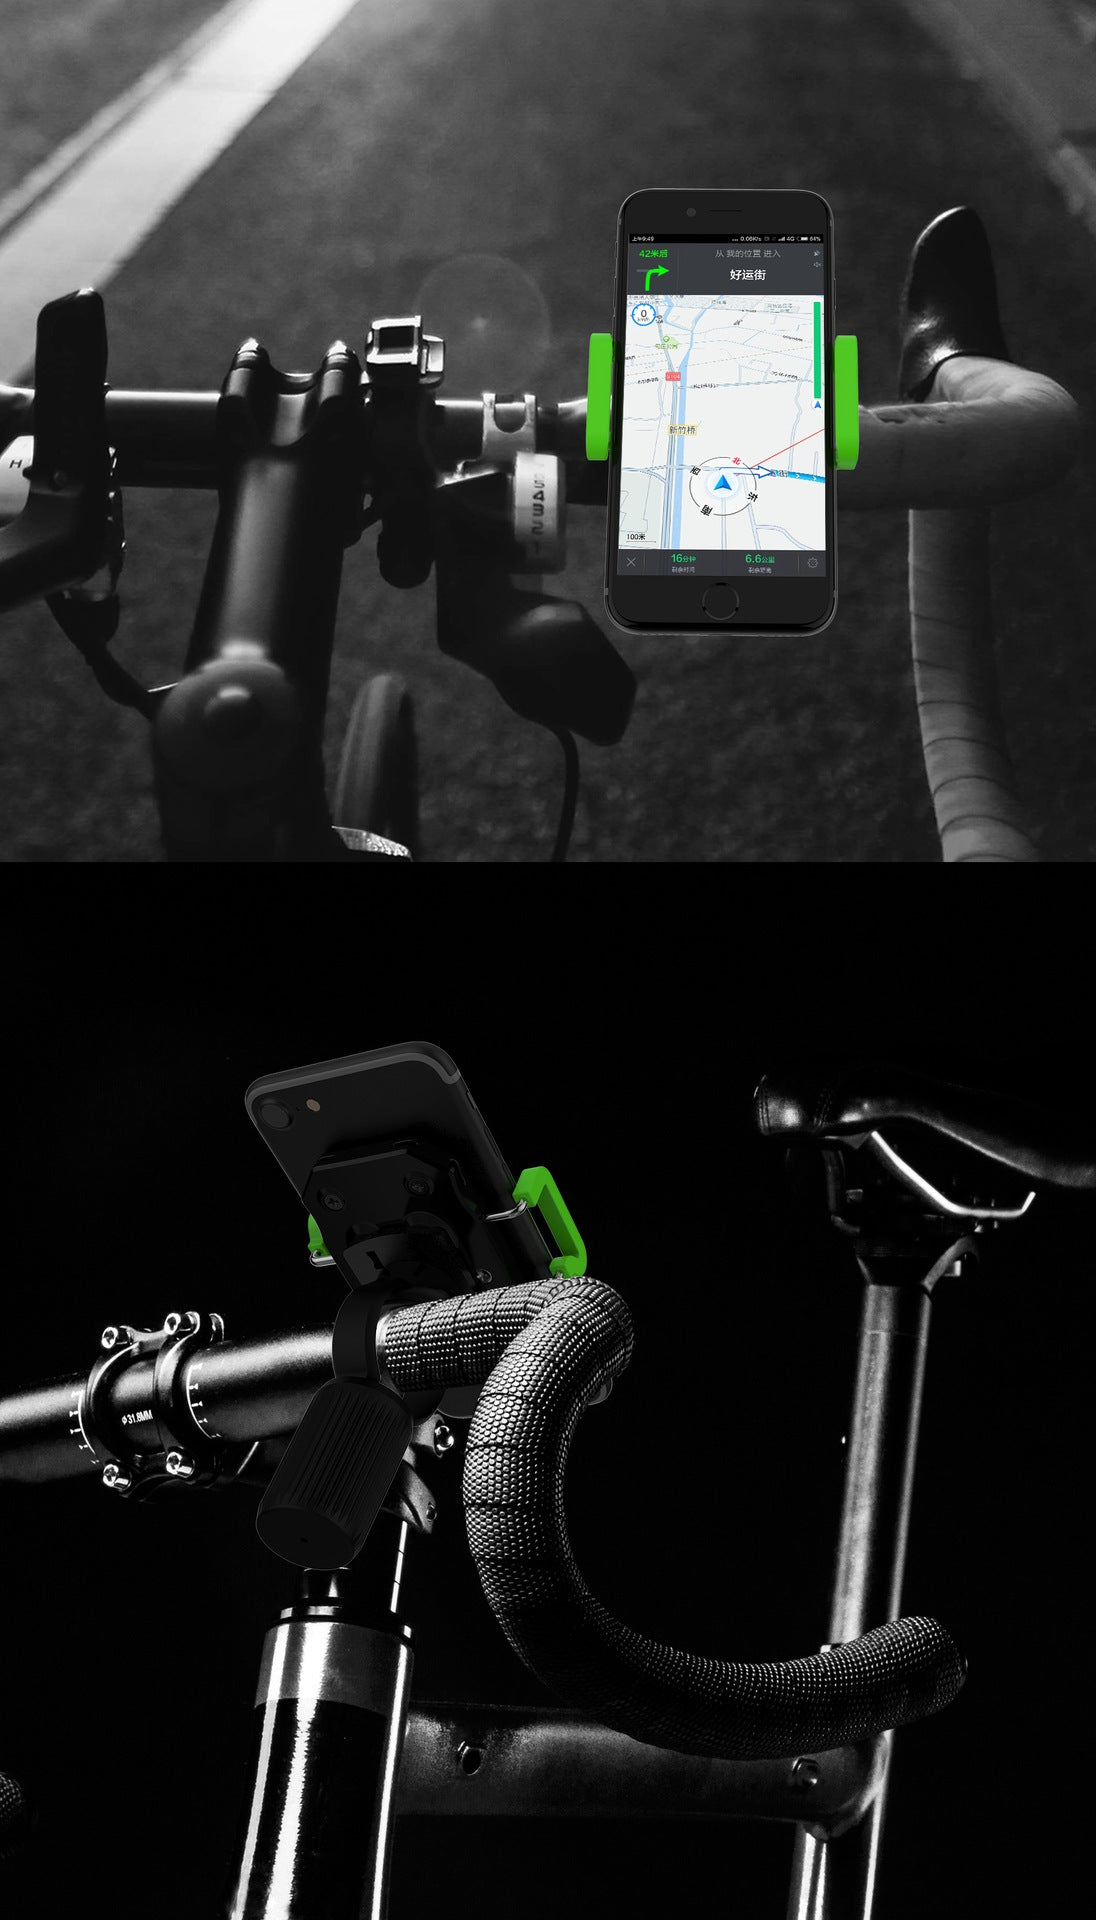 IDMIX M05 Outdoors Bike Mount Handle Bar Cellphone Holder for Smartphones